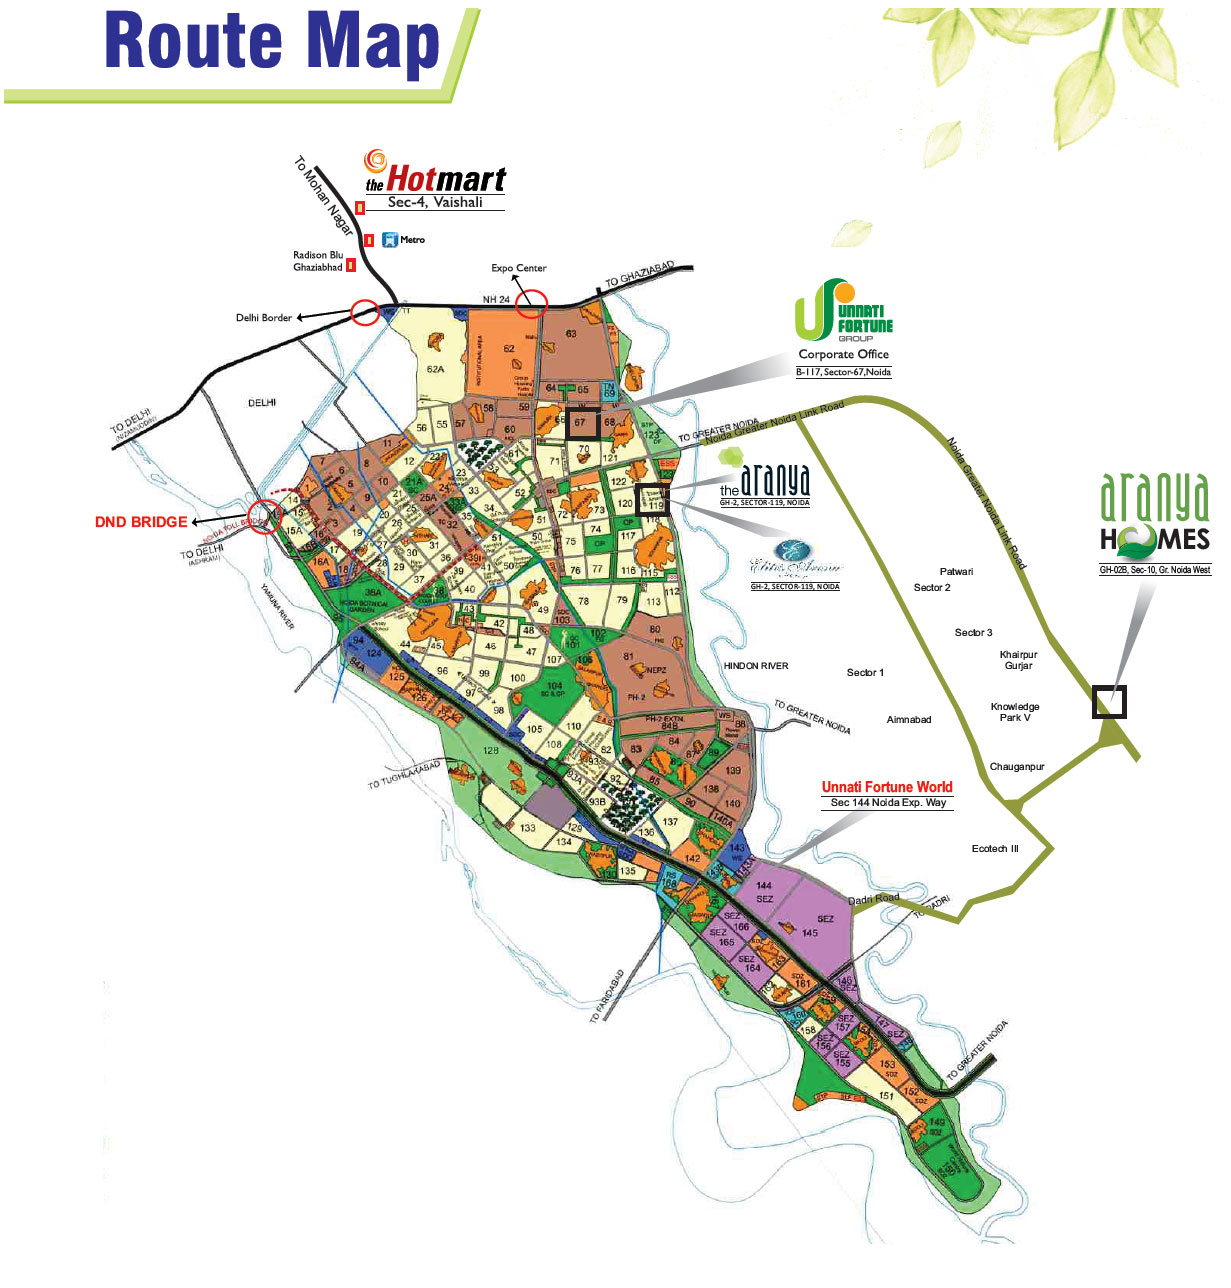 aranay homes location map